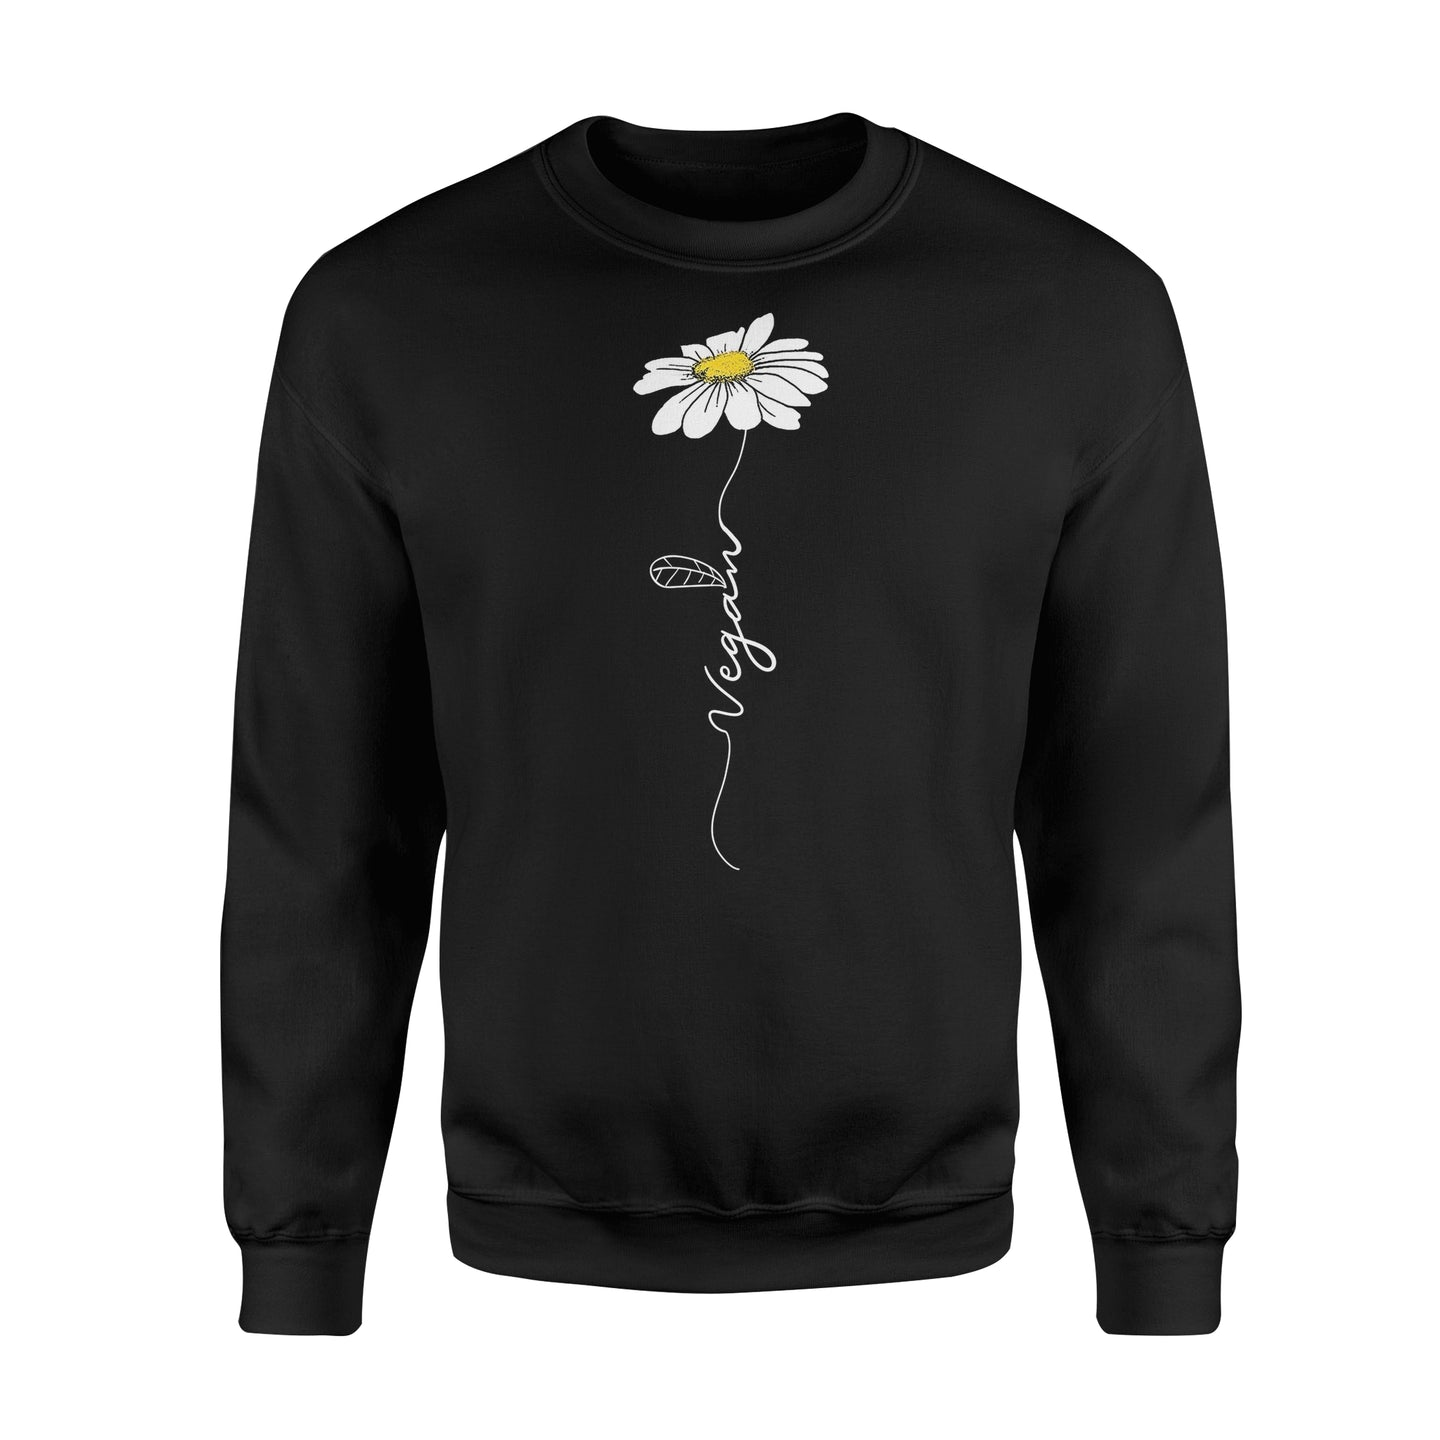 Vegan Hippie Vegetable Flower T shirt - Standard Fleece Sweatshirt Apparel S / Black